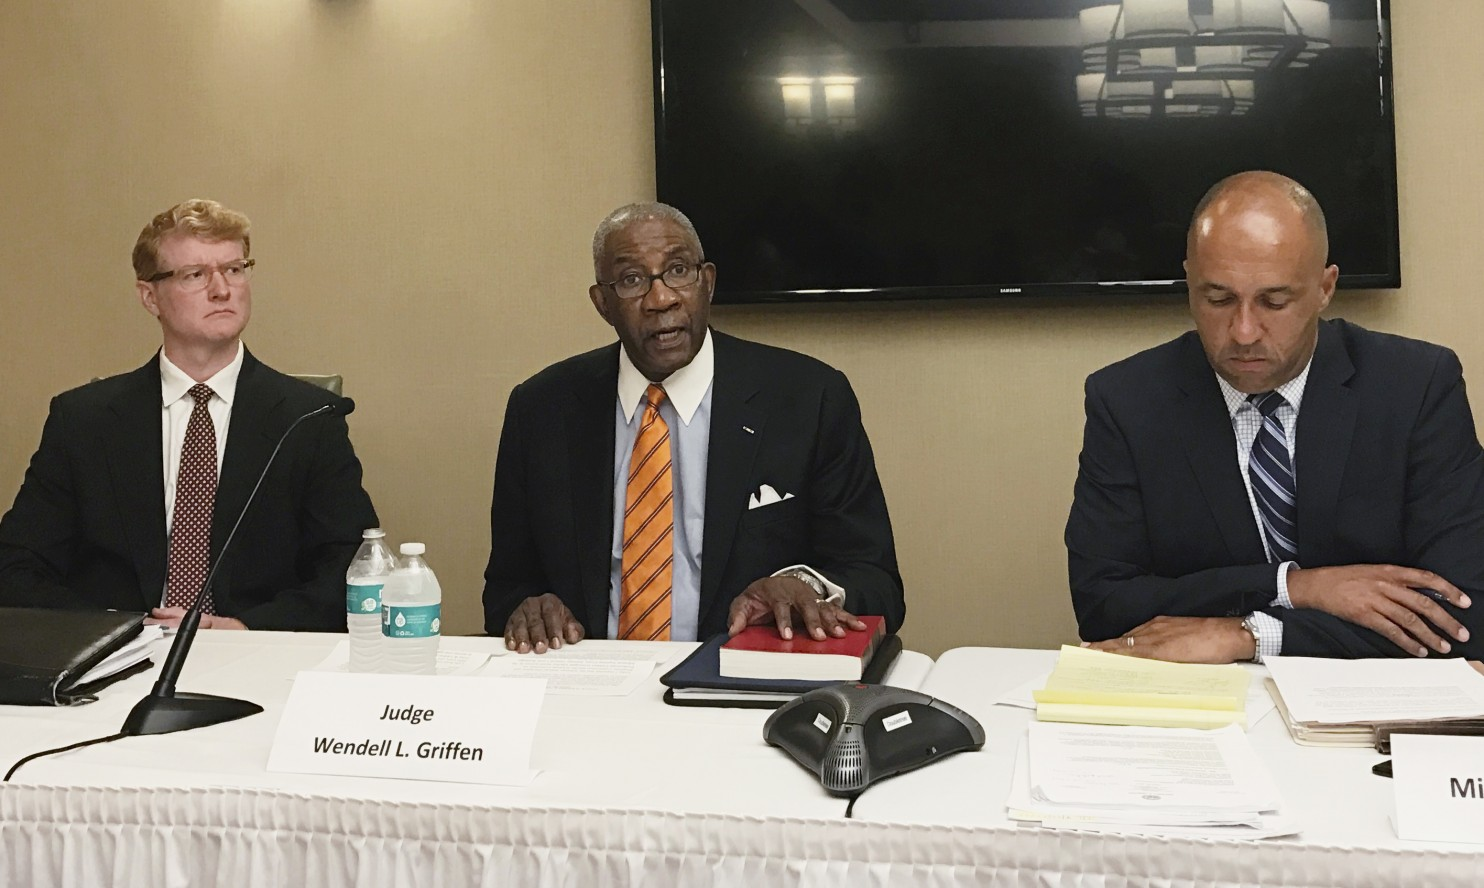 Pulaski County Circuit Judge Wendell Griffen, center, speaks at a news conference Wednesday, April 26, 2017, with his attorneys about a letter he's sent to two panels seeking an investigation into Arkansas' attorney general and Supreme Court over his removal from hearing death penalty cases. Griffen was removed from the cases after he participated in an anti-death penalty demonstration the same day he blocked Arkansas from using a lethal injection drug. (Andrew DeMillo/Associated Press)